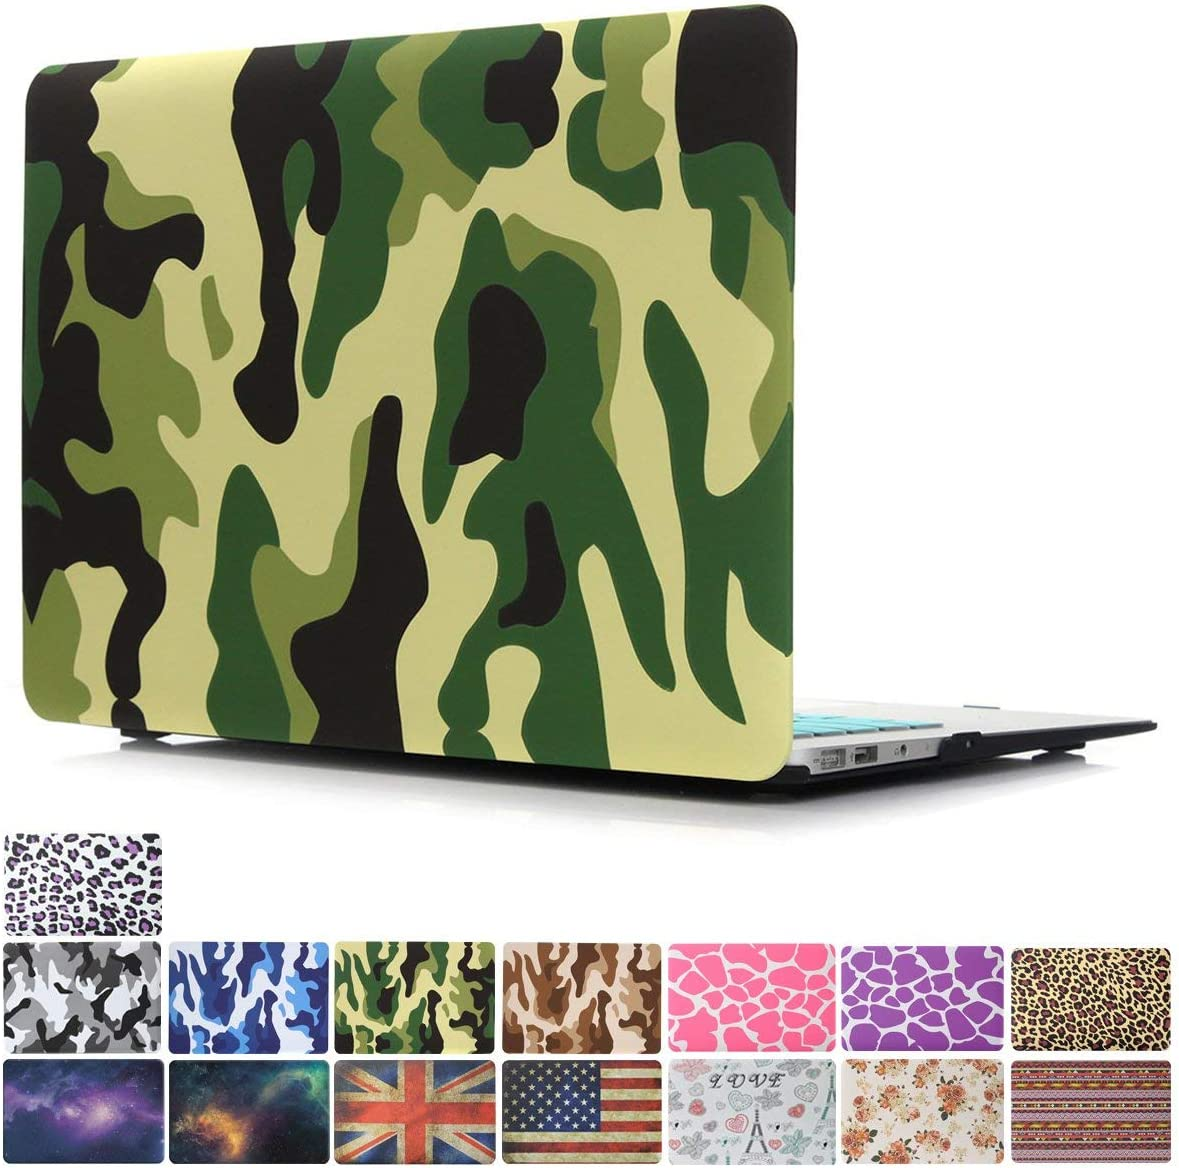 """MacBook Air 13"""" Case, PapyHall MacBook Pro Case Color Printing Plastic Coated Hard Shell Protective Case Cover for 2010-2017 Ver MacBook Air 13 inch Model: A1369/A1466(NO Touch ID) - Camouflage Green"""